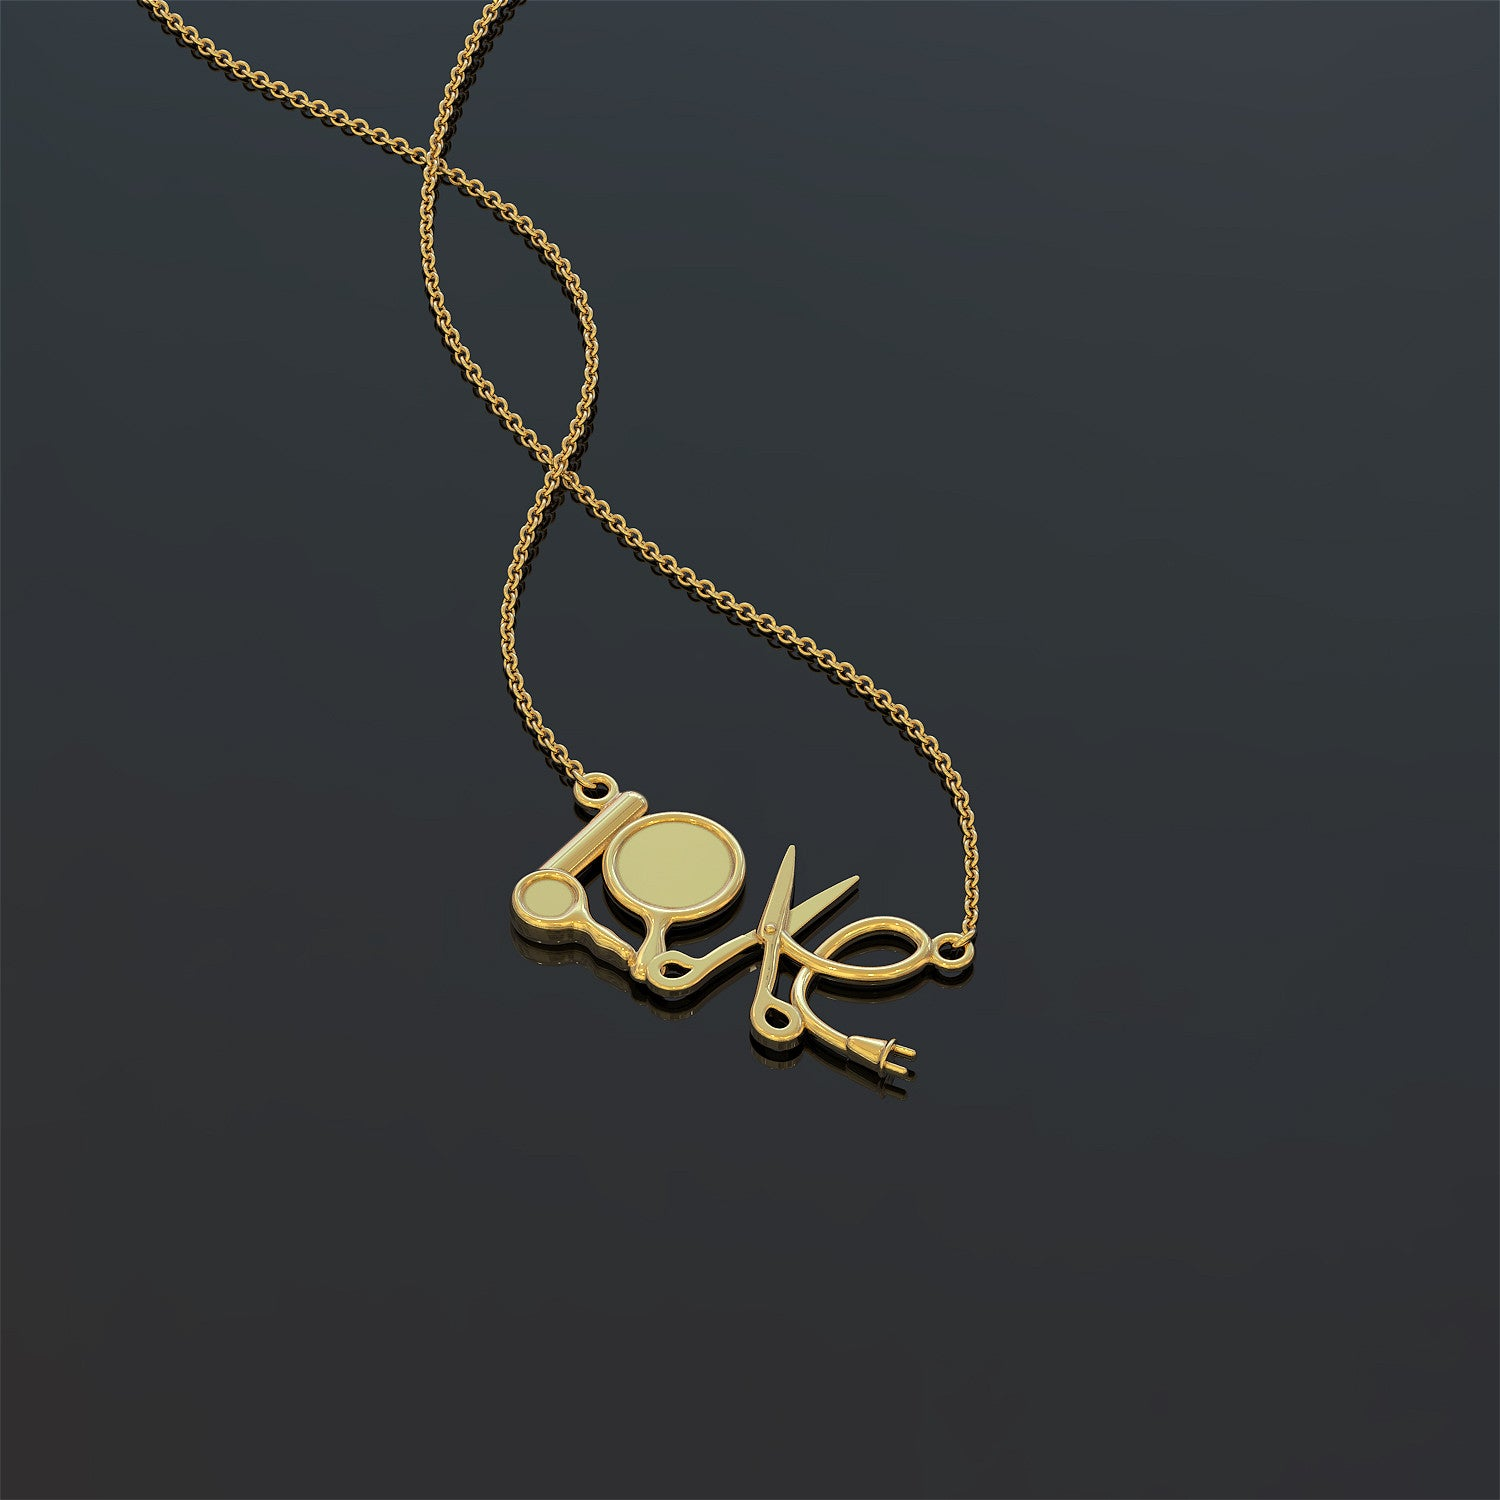 Love Hairstylist Necklace